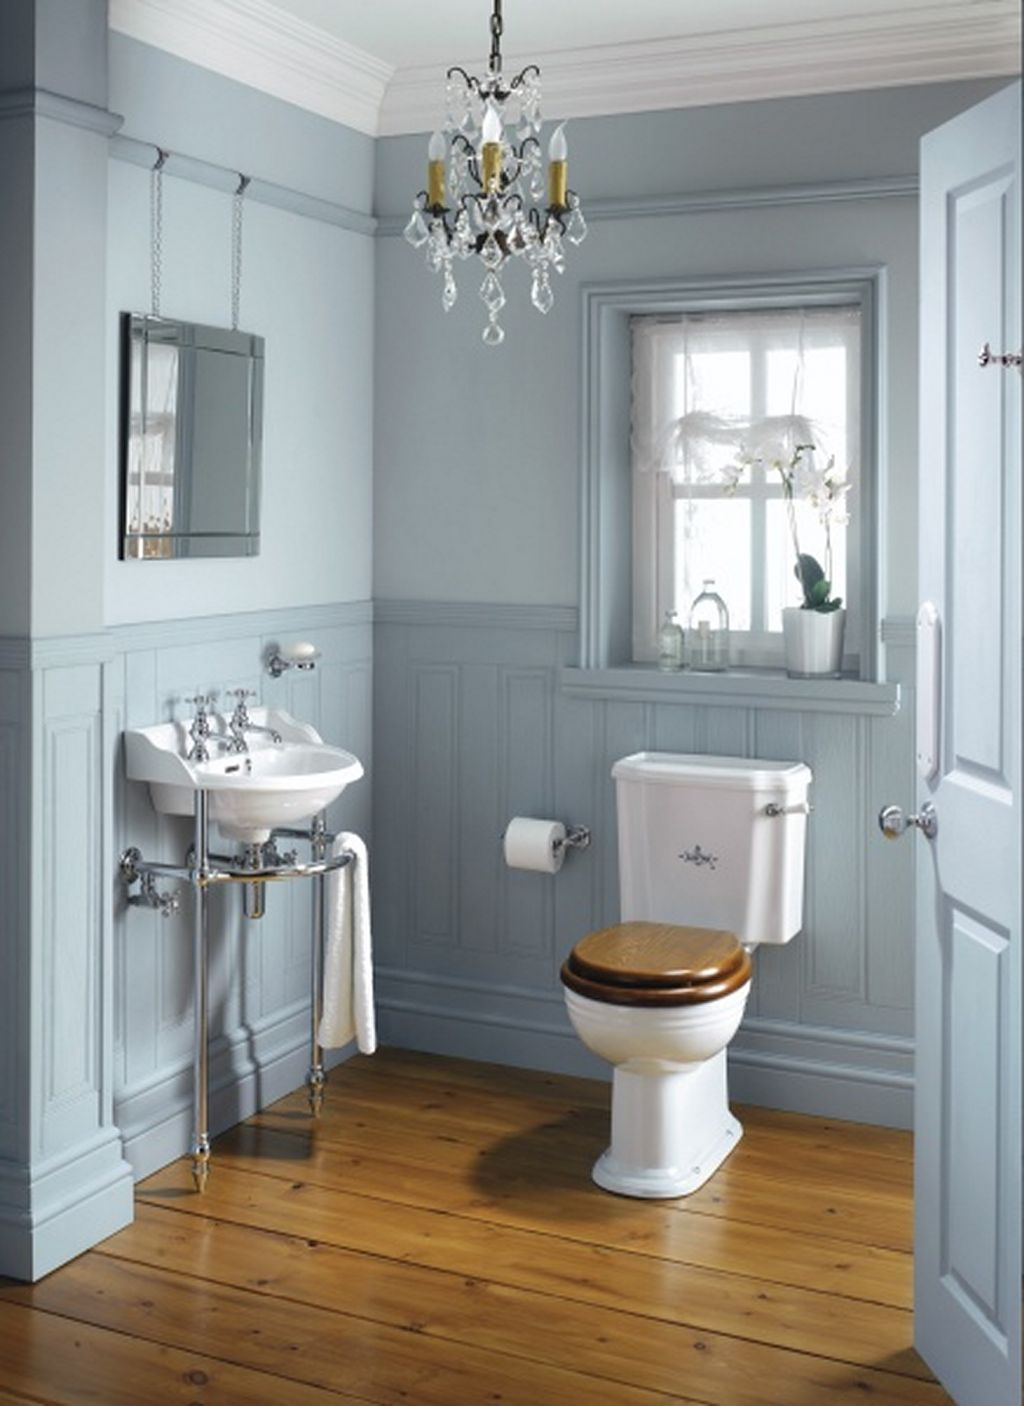 Traditional Bathroom Suites Luxurious Design Victorian EwdInteriors